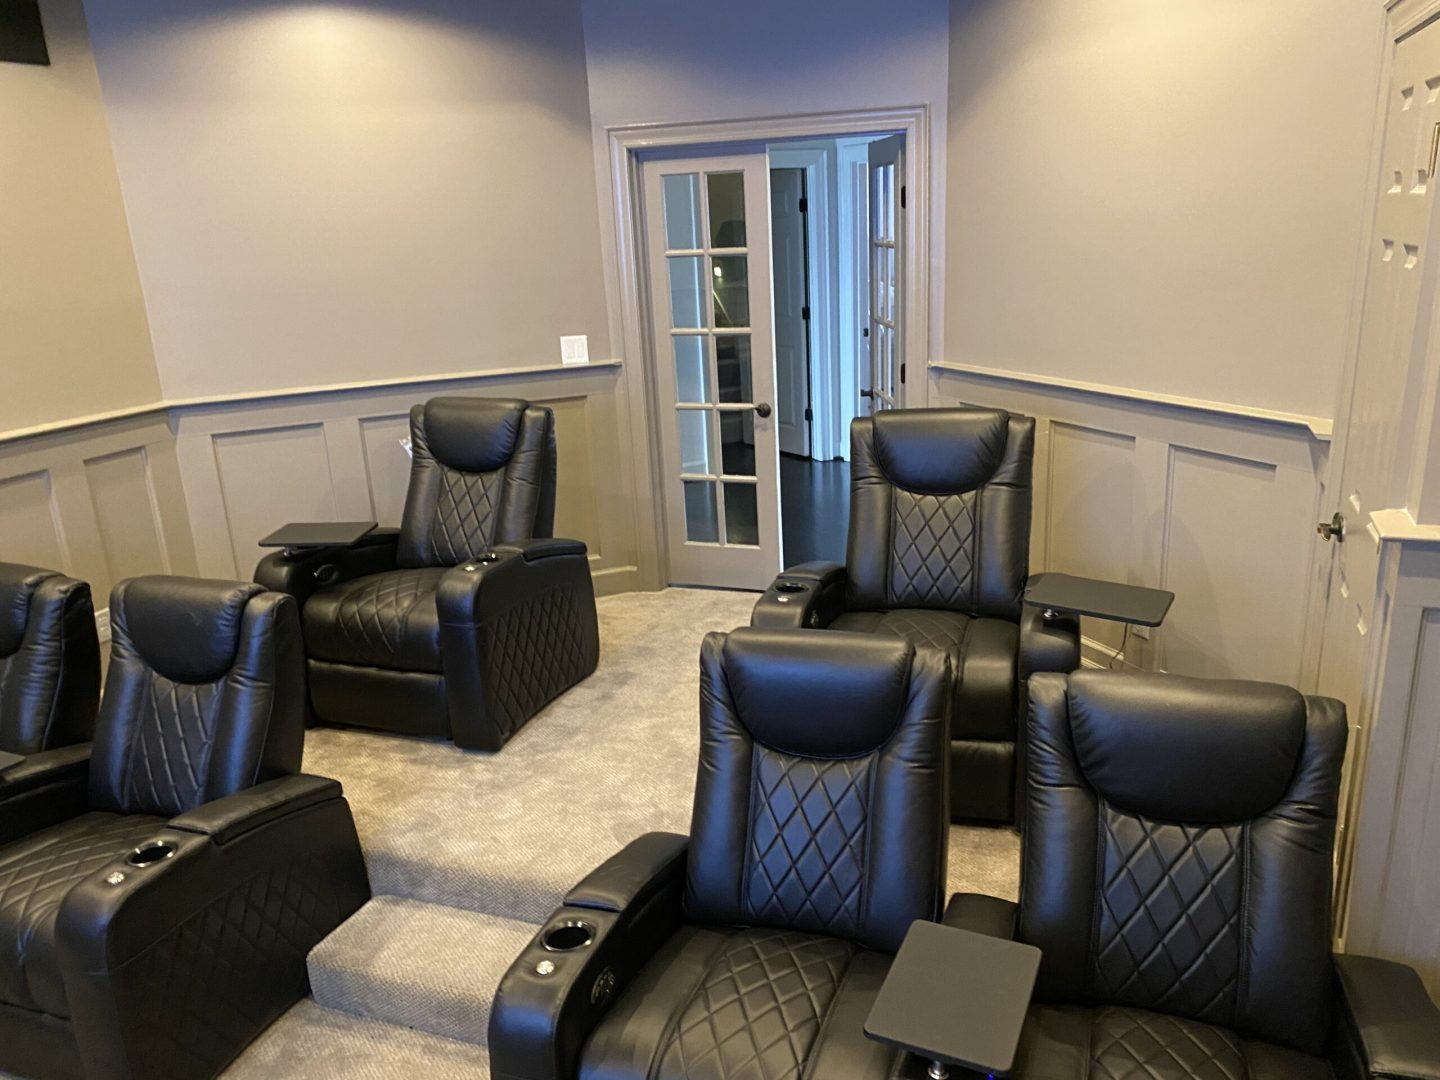 Birmingham Home theater installation for luxury living